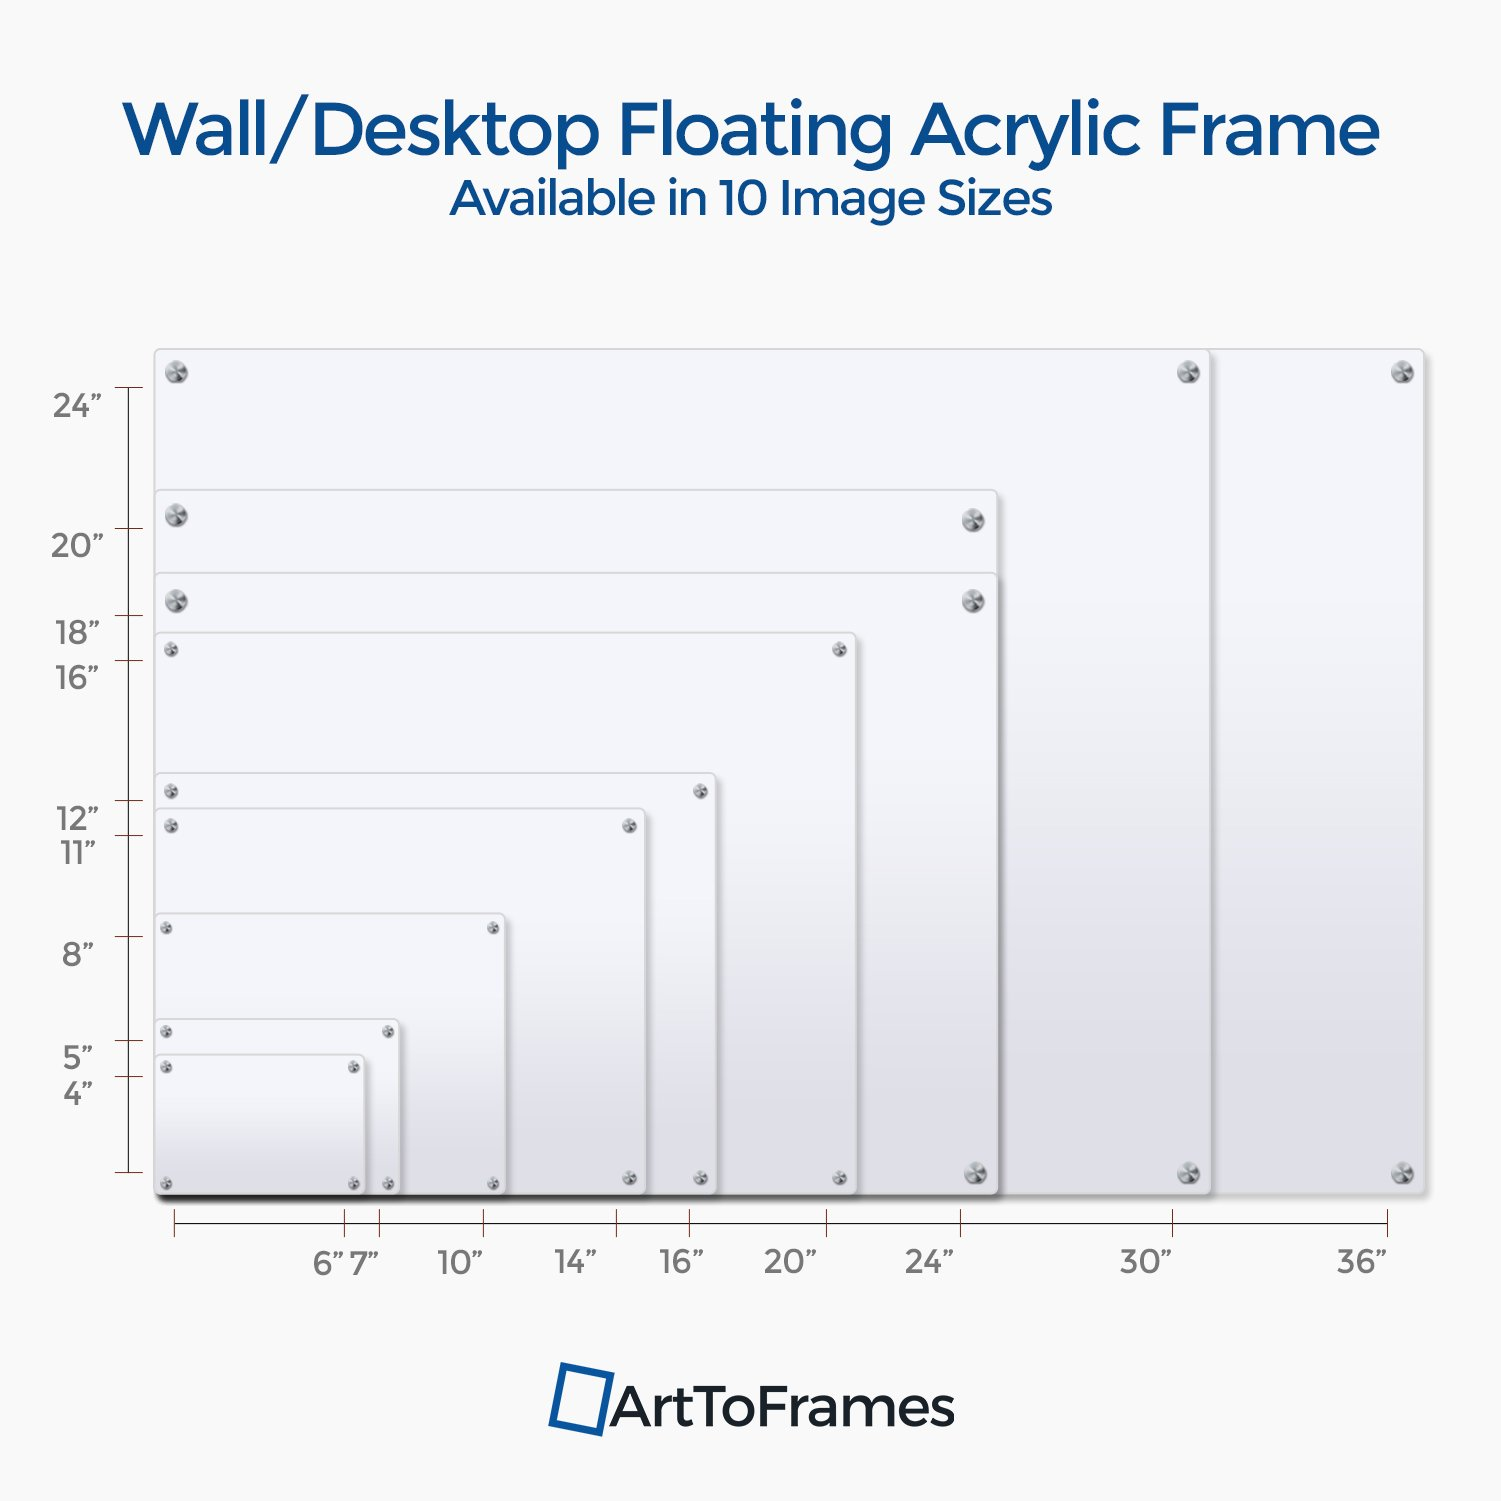 ArtToFrames Floating Acrylic Frame for Pictures Up to 16x20 inches (Full Frame is 20x24) with Gold Standoff Wall Mount Hardware, Acrylic-109-16x20-71 by ArtToFrames (Image #6)